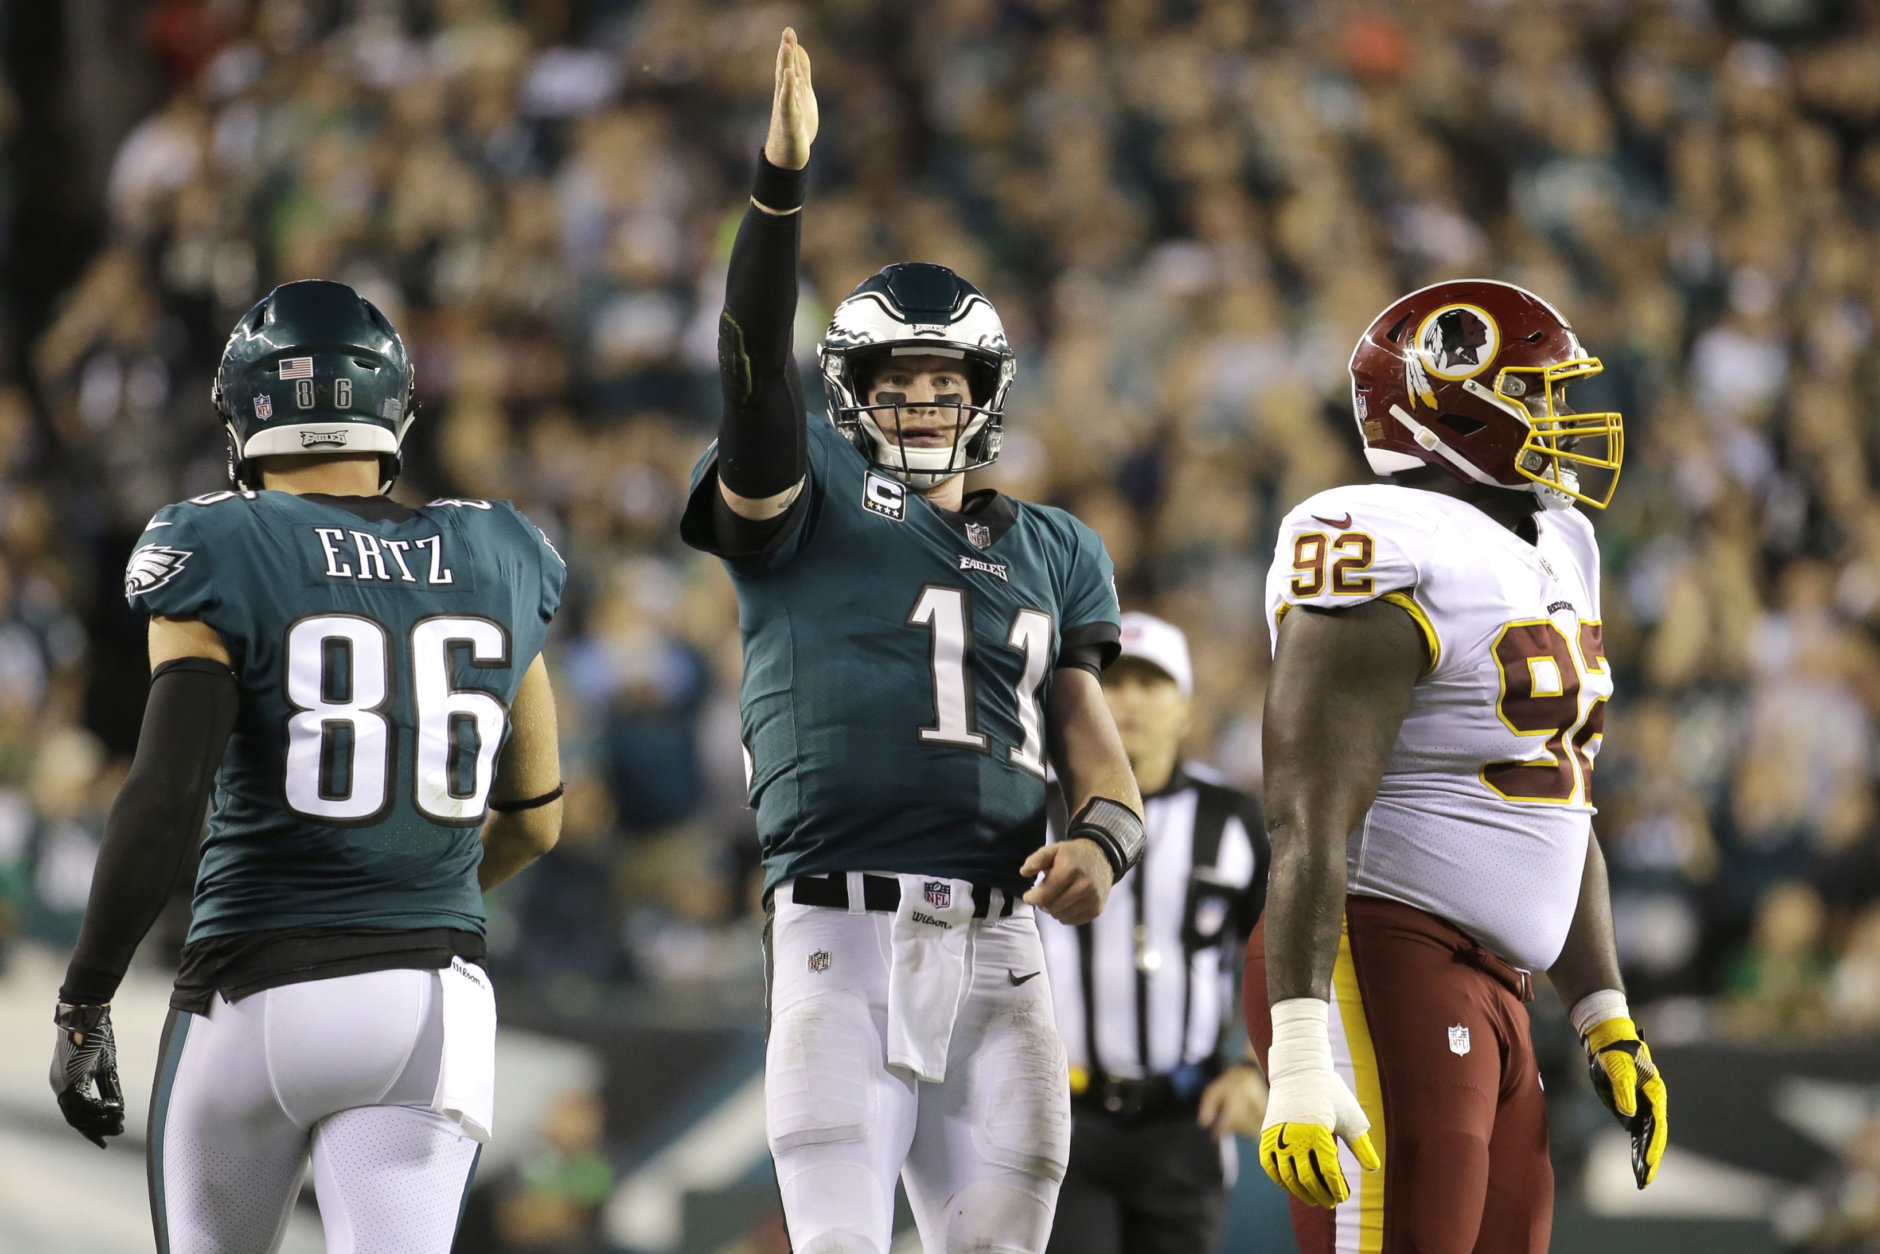 FILE - In this Monday, Oct. 23, 2017, file photo, Philadelphia Eagles quarterback Carson Wentz (11) gestures after scrambling for yardage against the Washington Redskins during the second half of an NFL football game in Philadelphia. Wentz and the Philadelphia Eagles are the talk of the NFL following a surprising 6-1 start and impressive victories in consecutive prime-time games.  (AP Photo/Michael Perez, File)